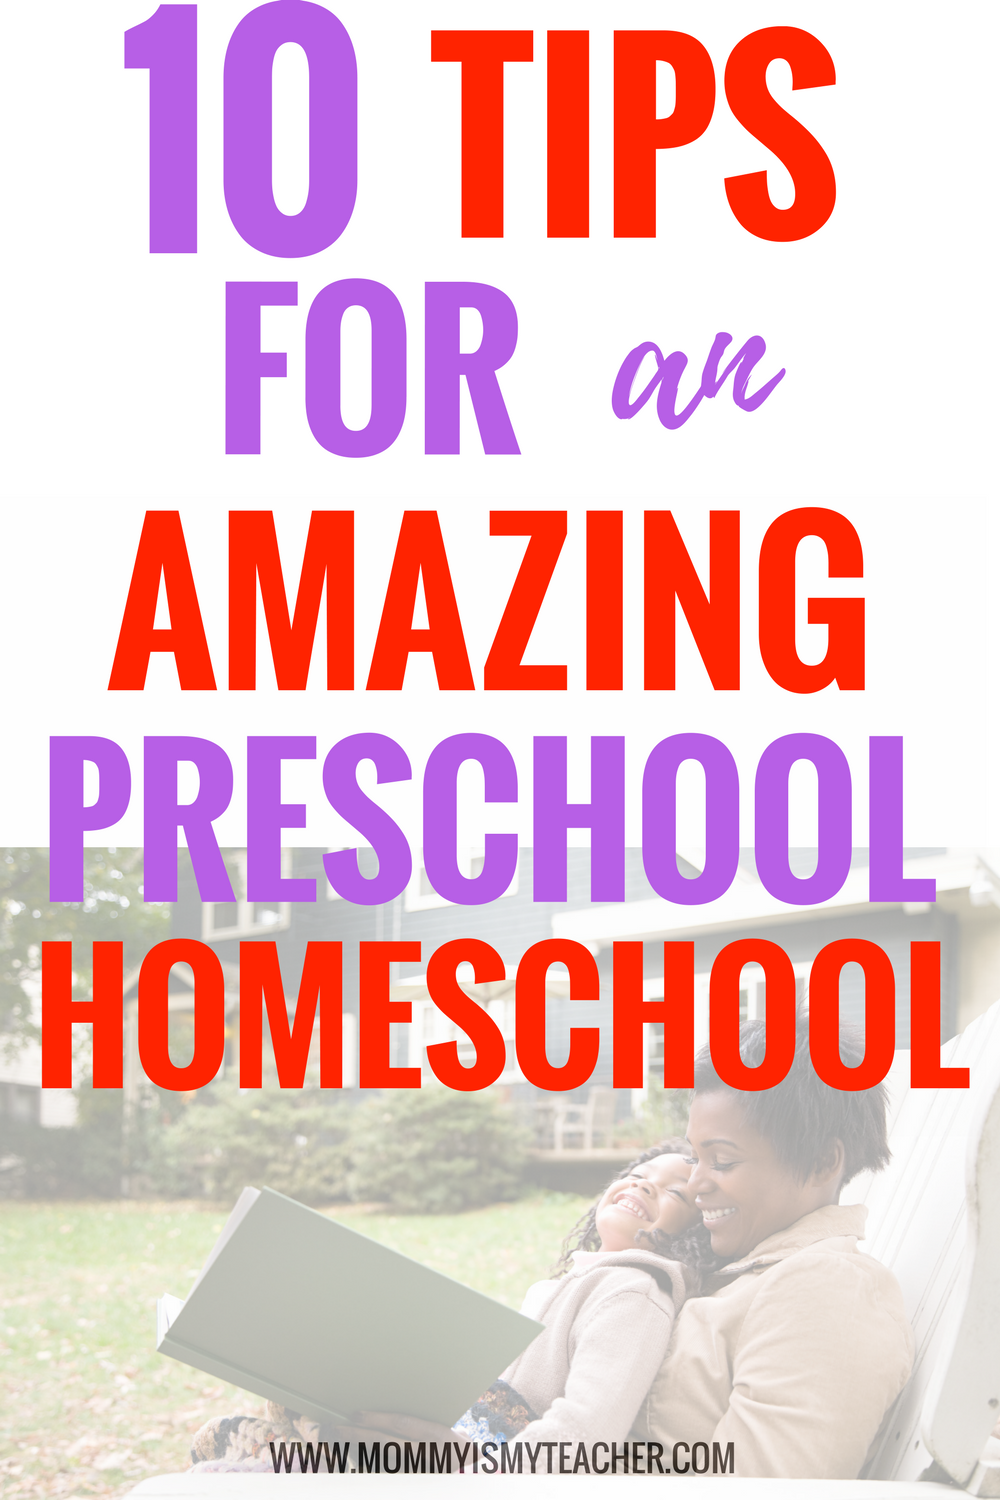 I love these tips on how to have preschool activities at home. This will be perfect for my preschool homeschool curriculum.